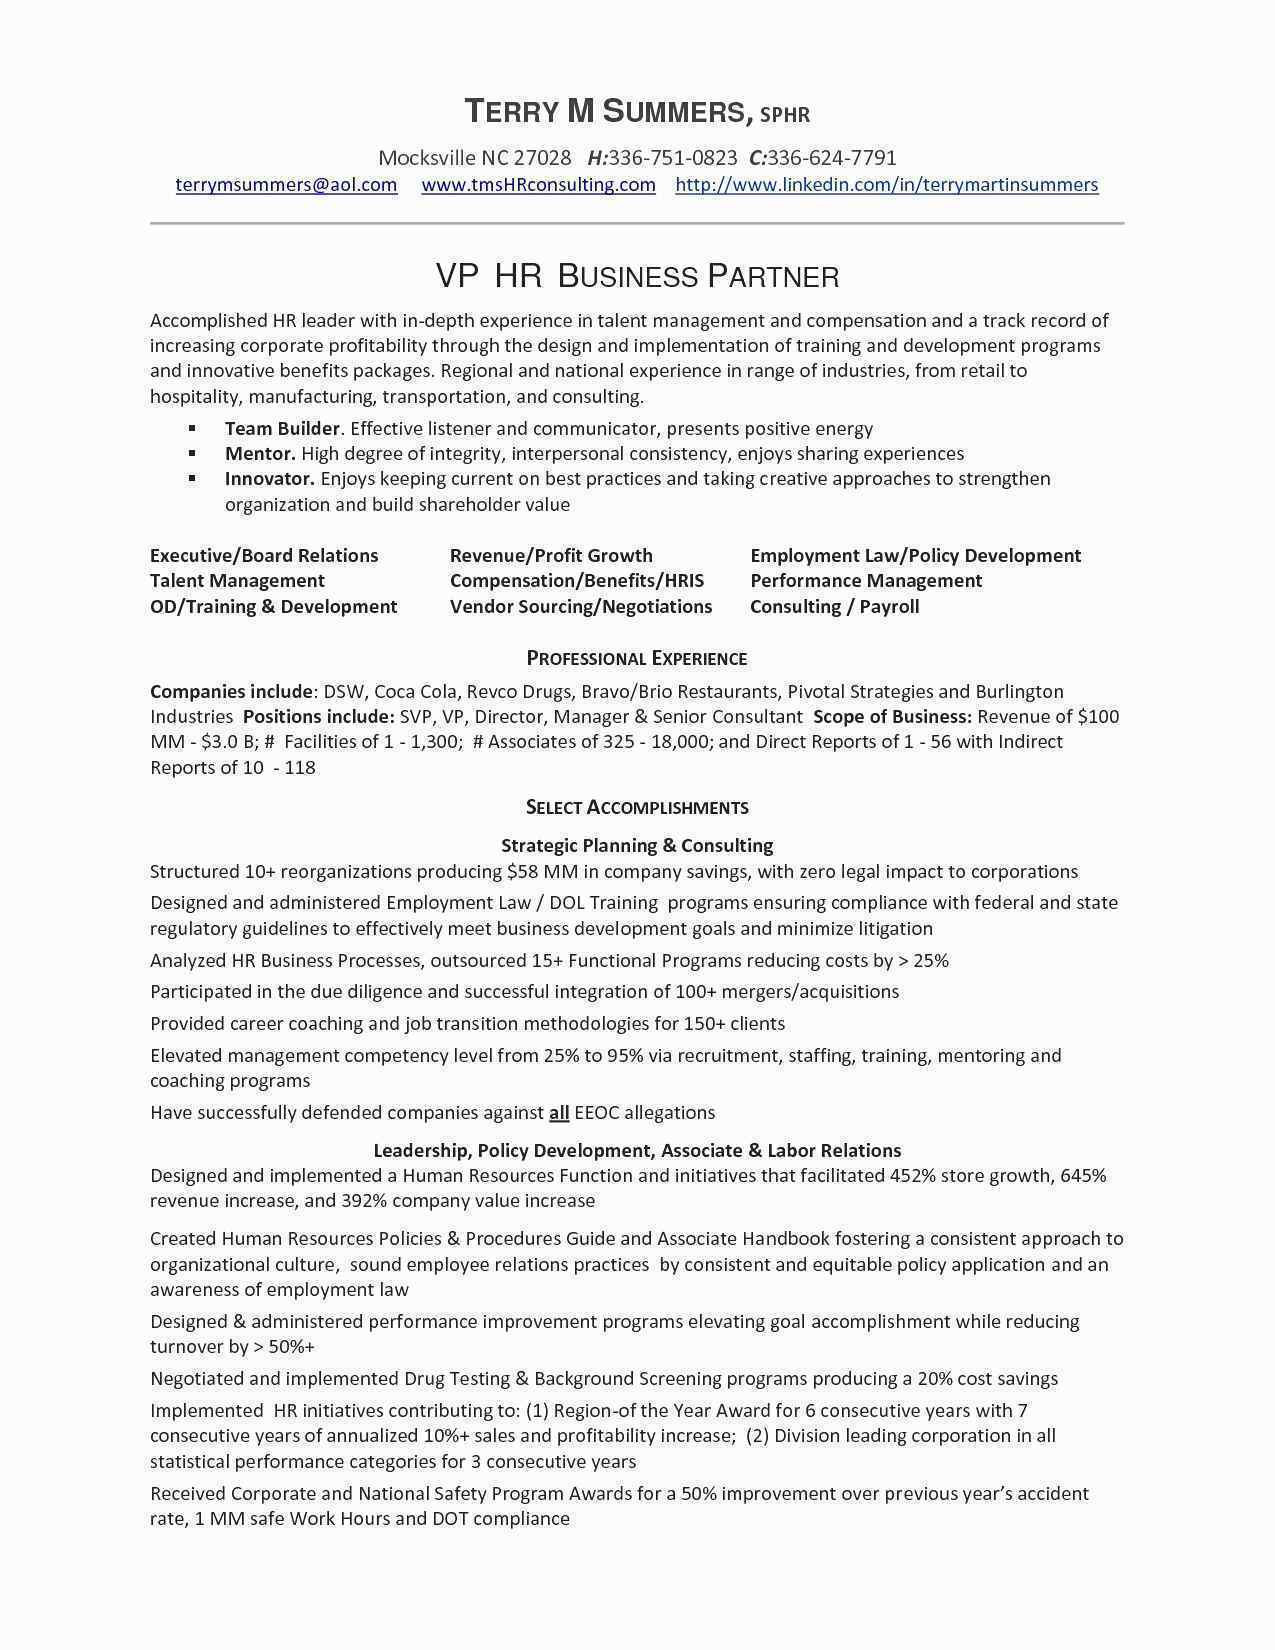 ford motor company jobs resume example-Ford Motor pany Jobs Resume Download Free 43 Luxury Cover Letter for Airlines Resume Cover Center 13-d